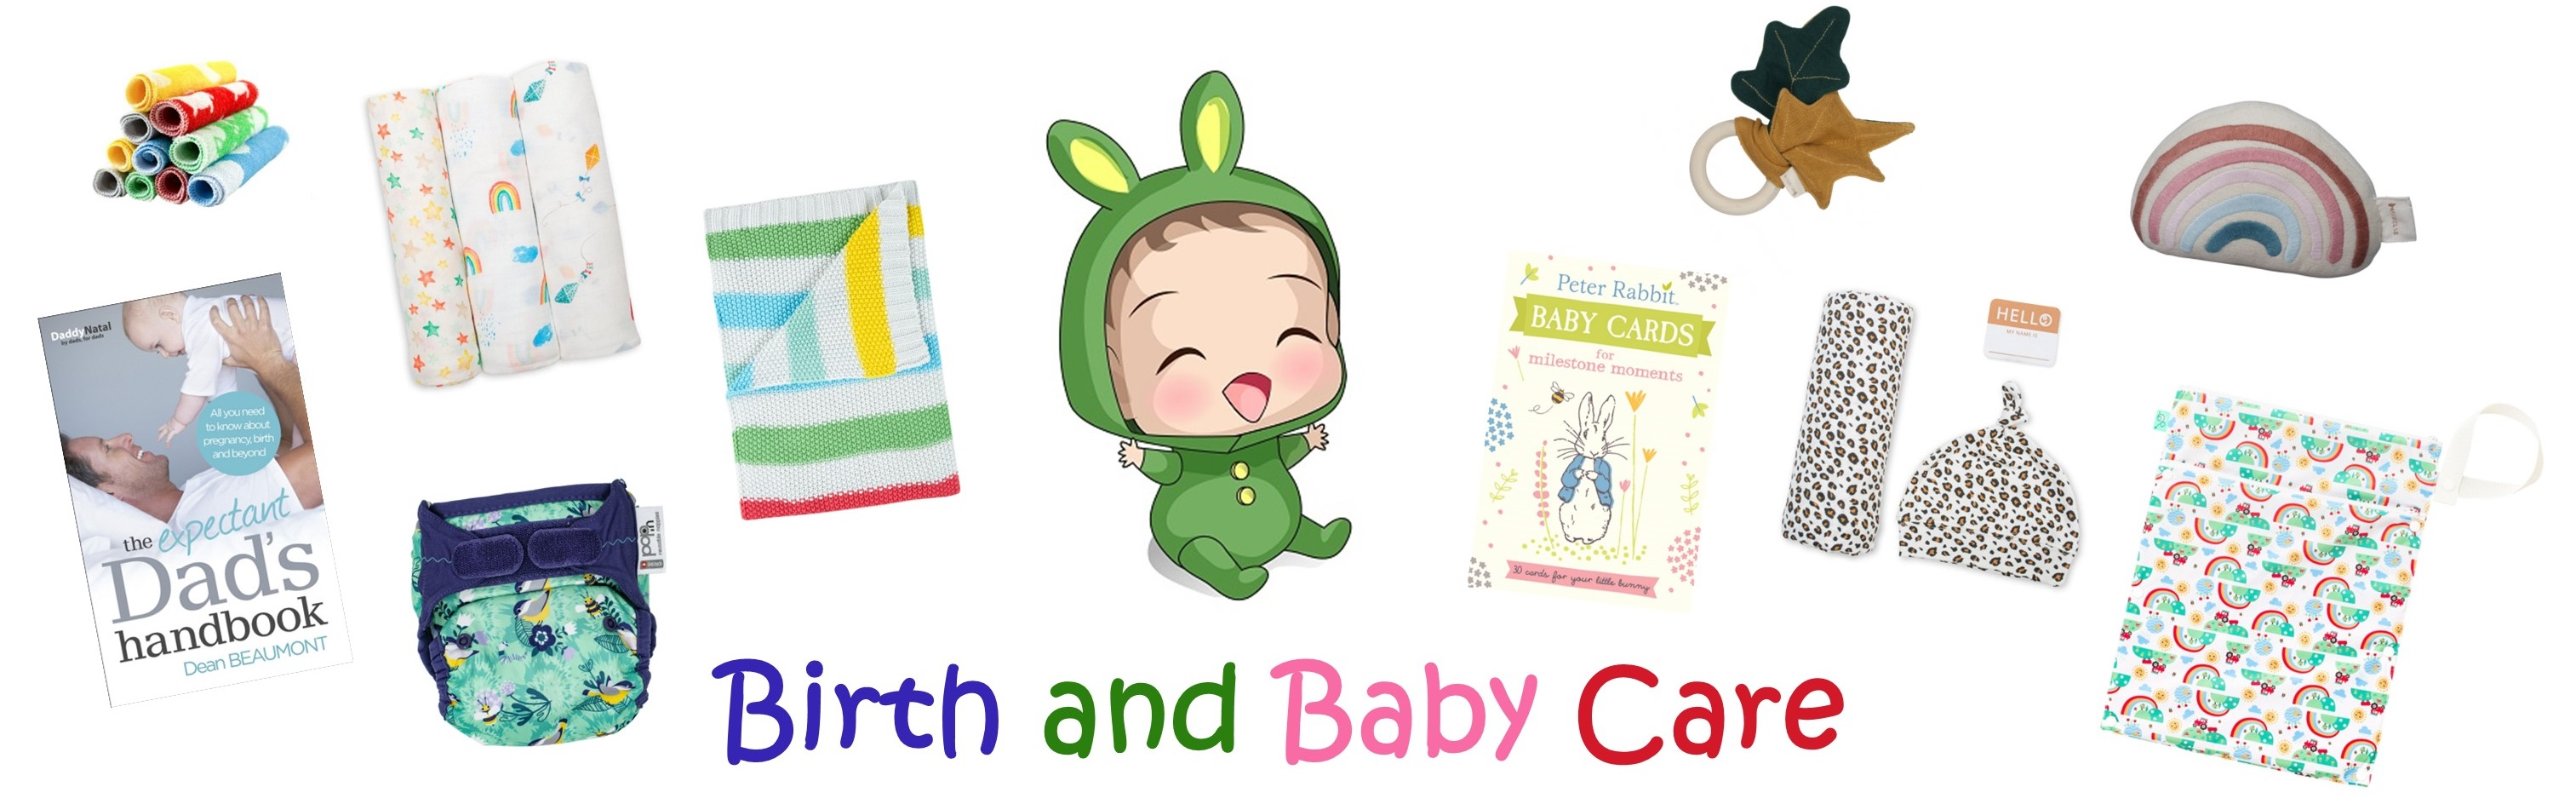 Birth and Baby Care